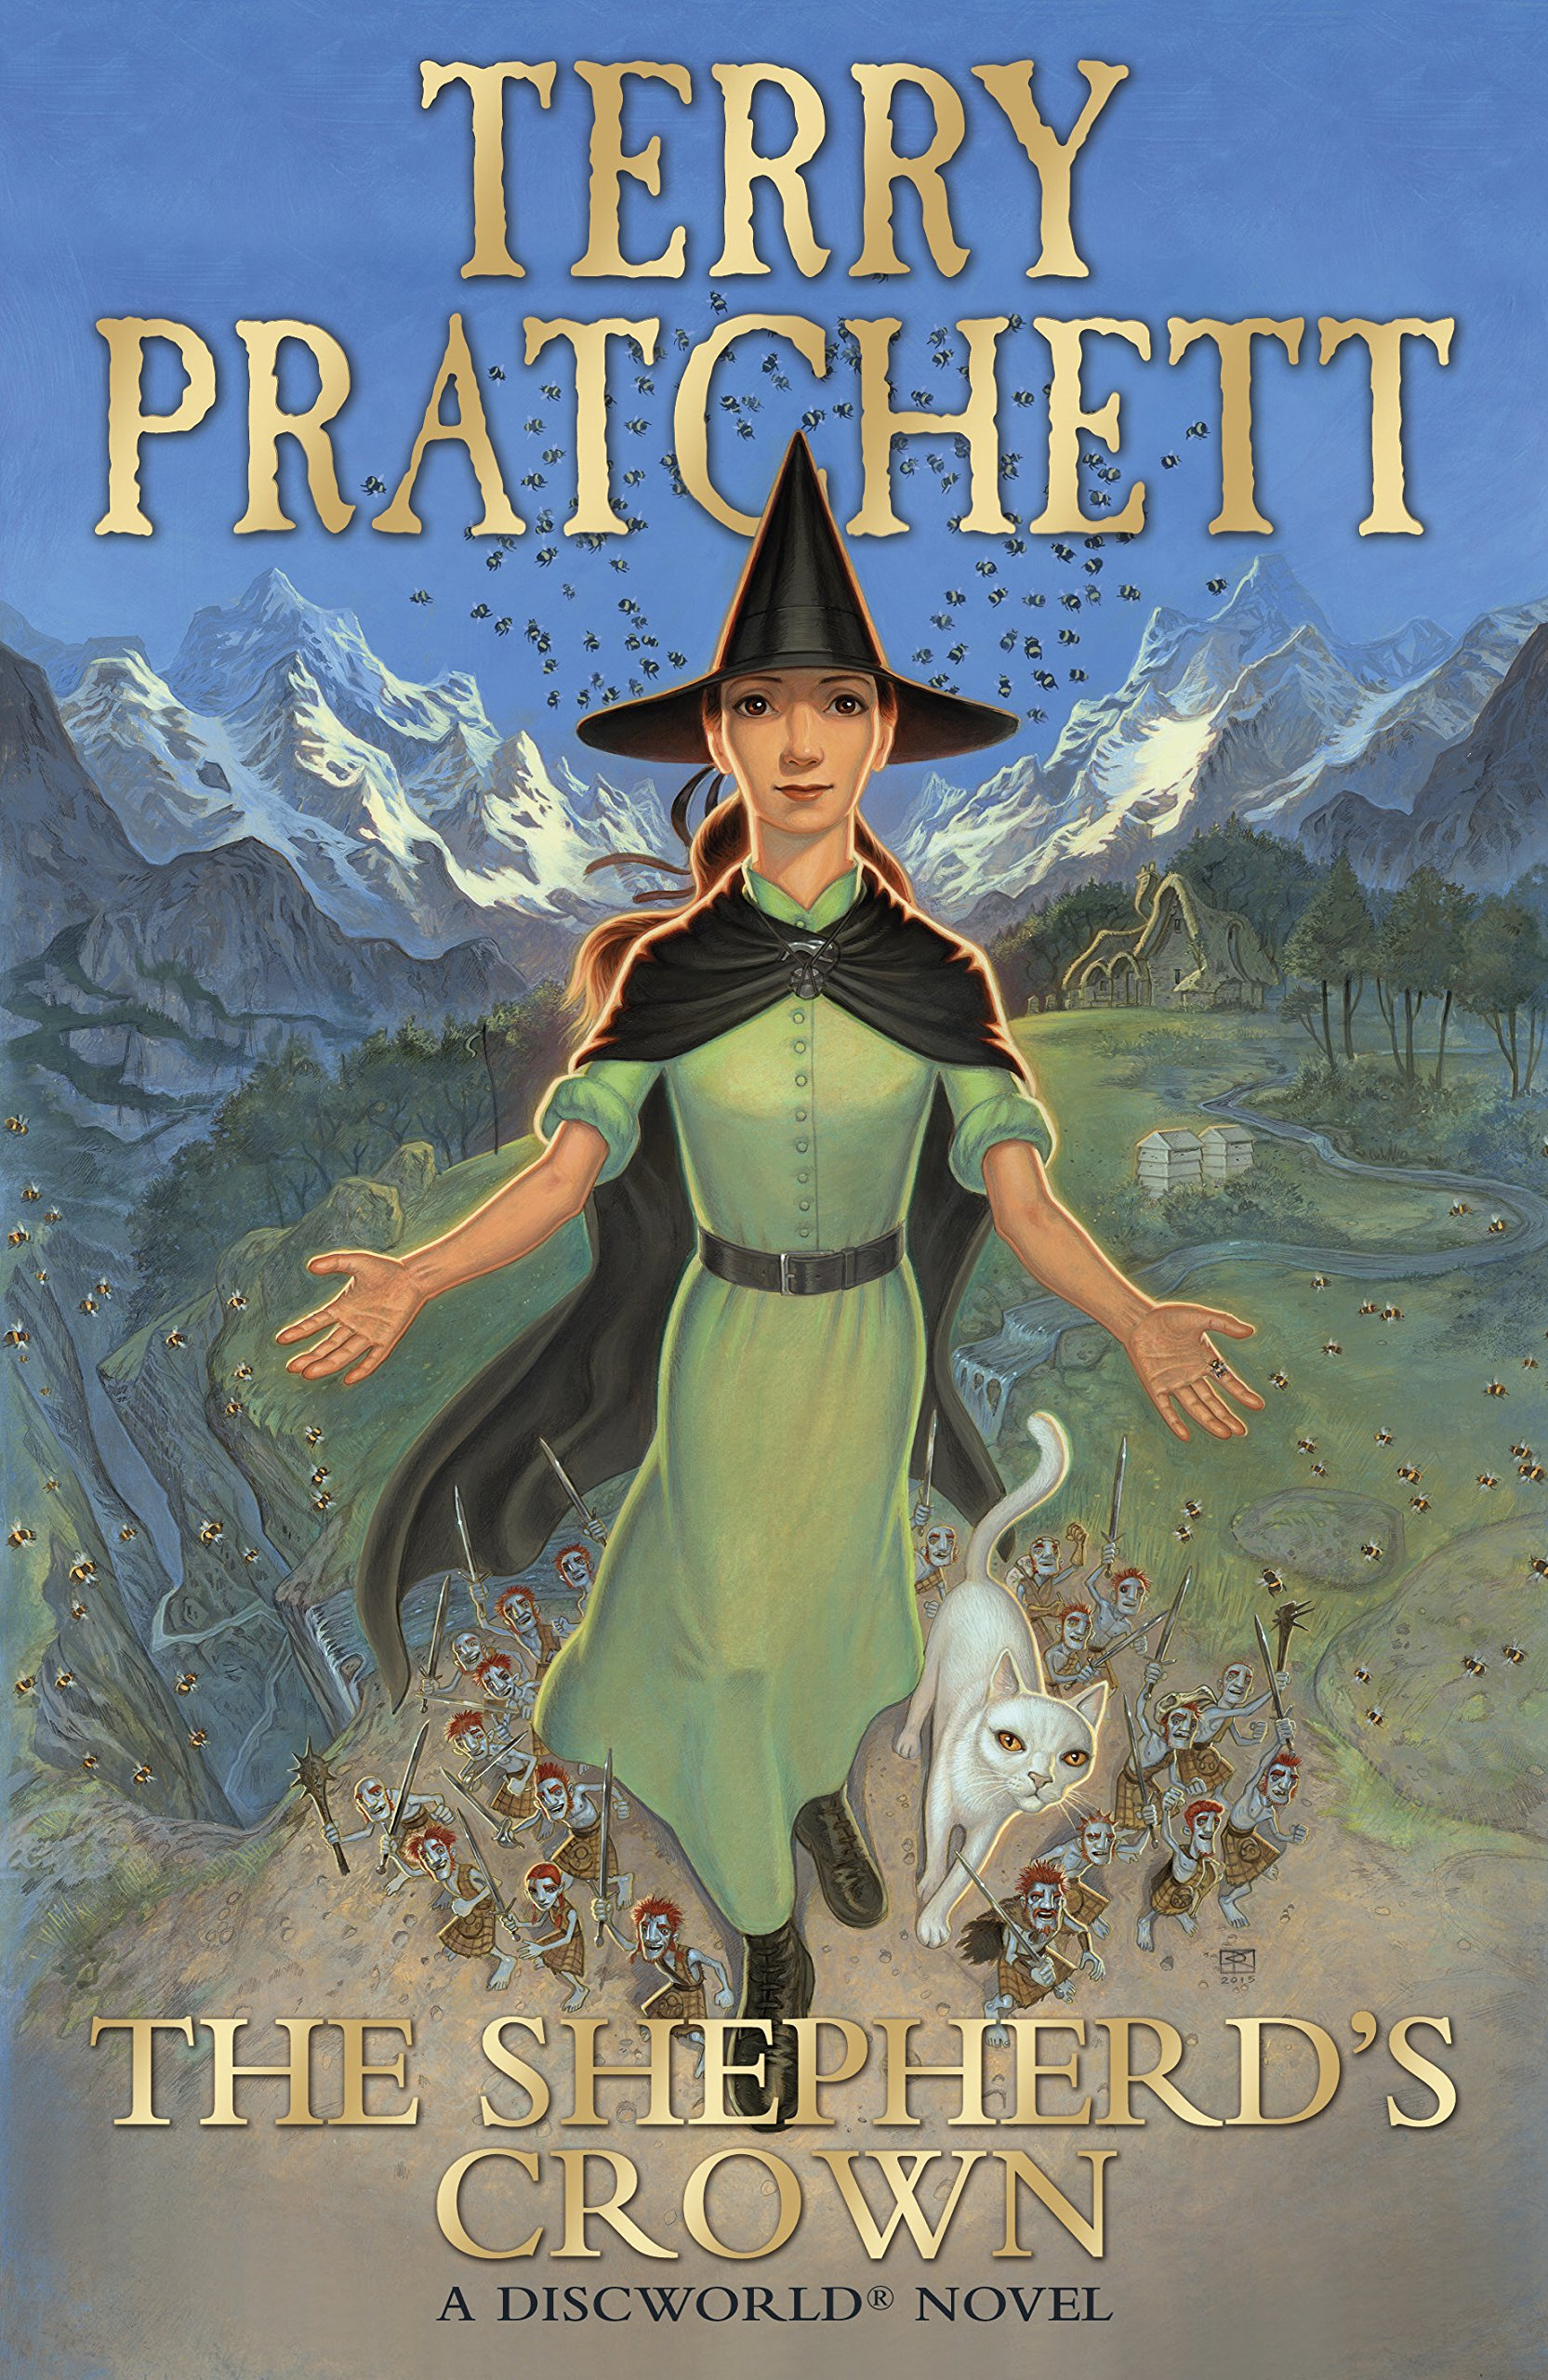 The UK cover of <em>The Shepherd's Crown</em>, illustrated by Paul Kidby.